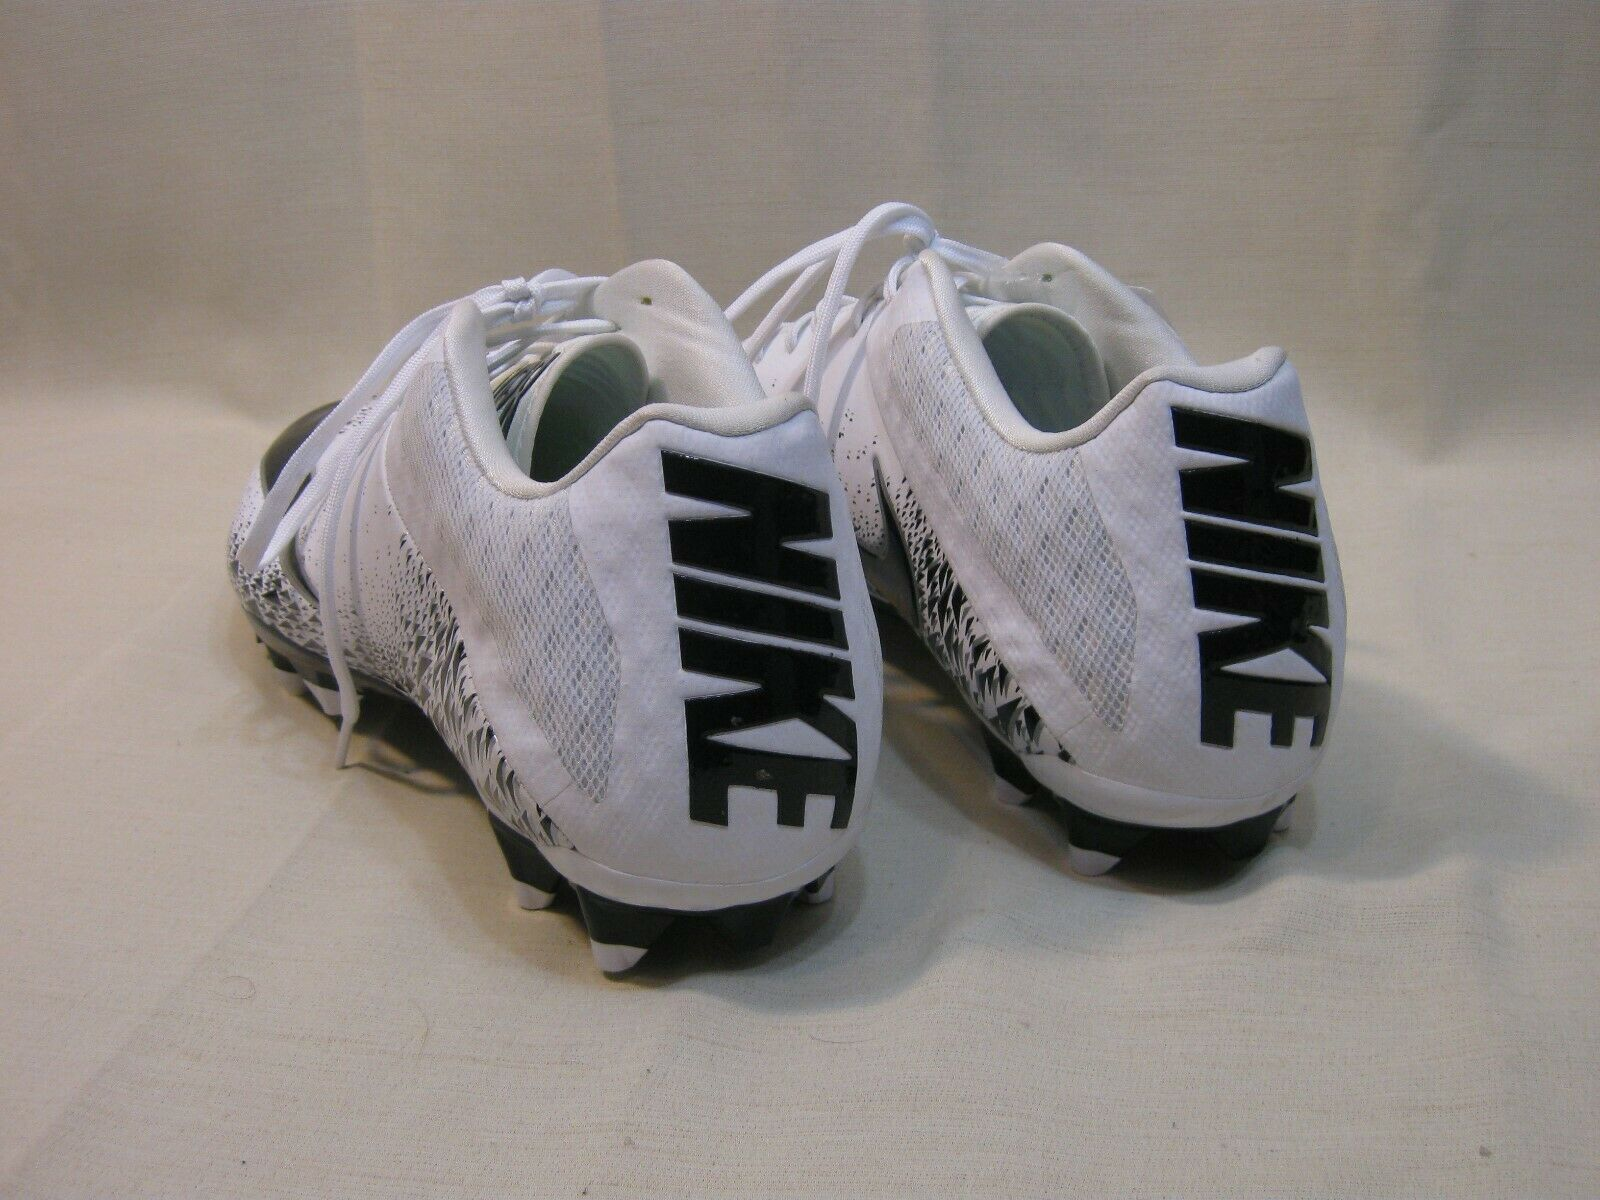 New Nike Vapor Speed White & Black 833380 - - - 100 Football Cleats Size 15 ab1c6b